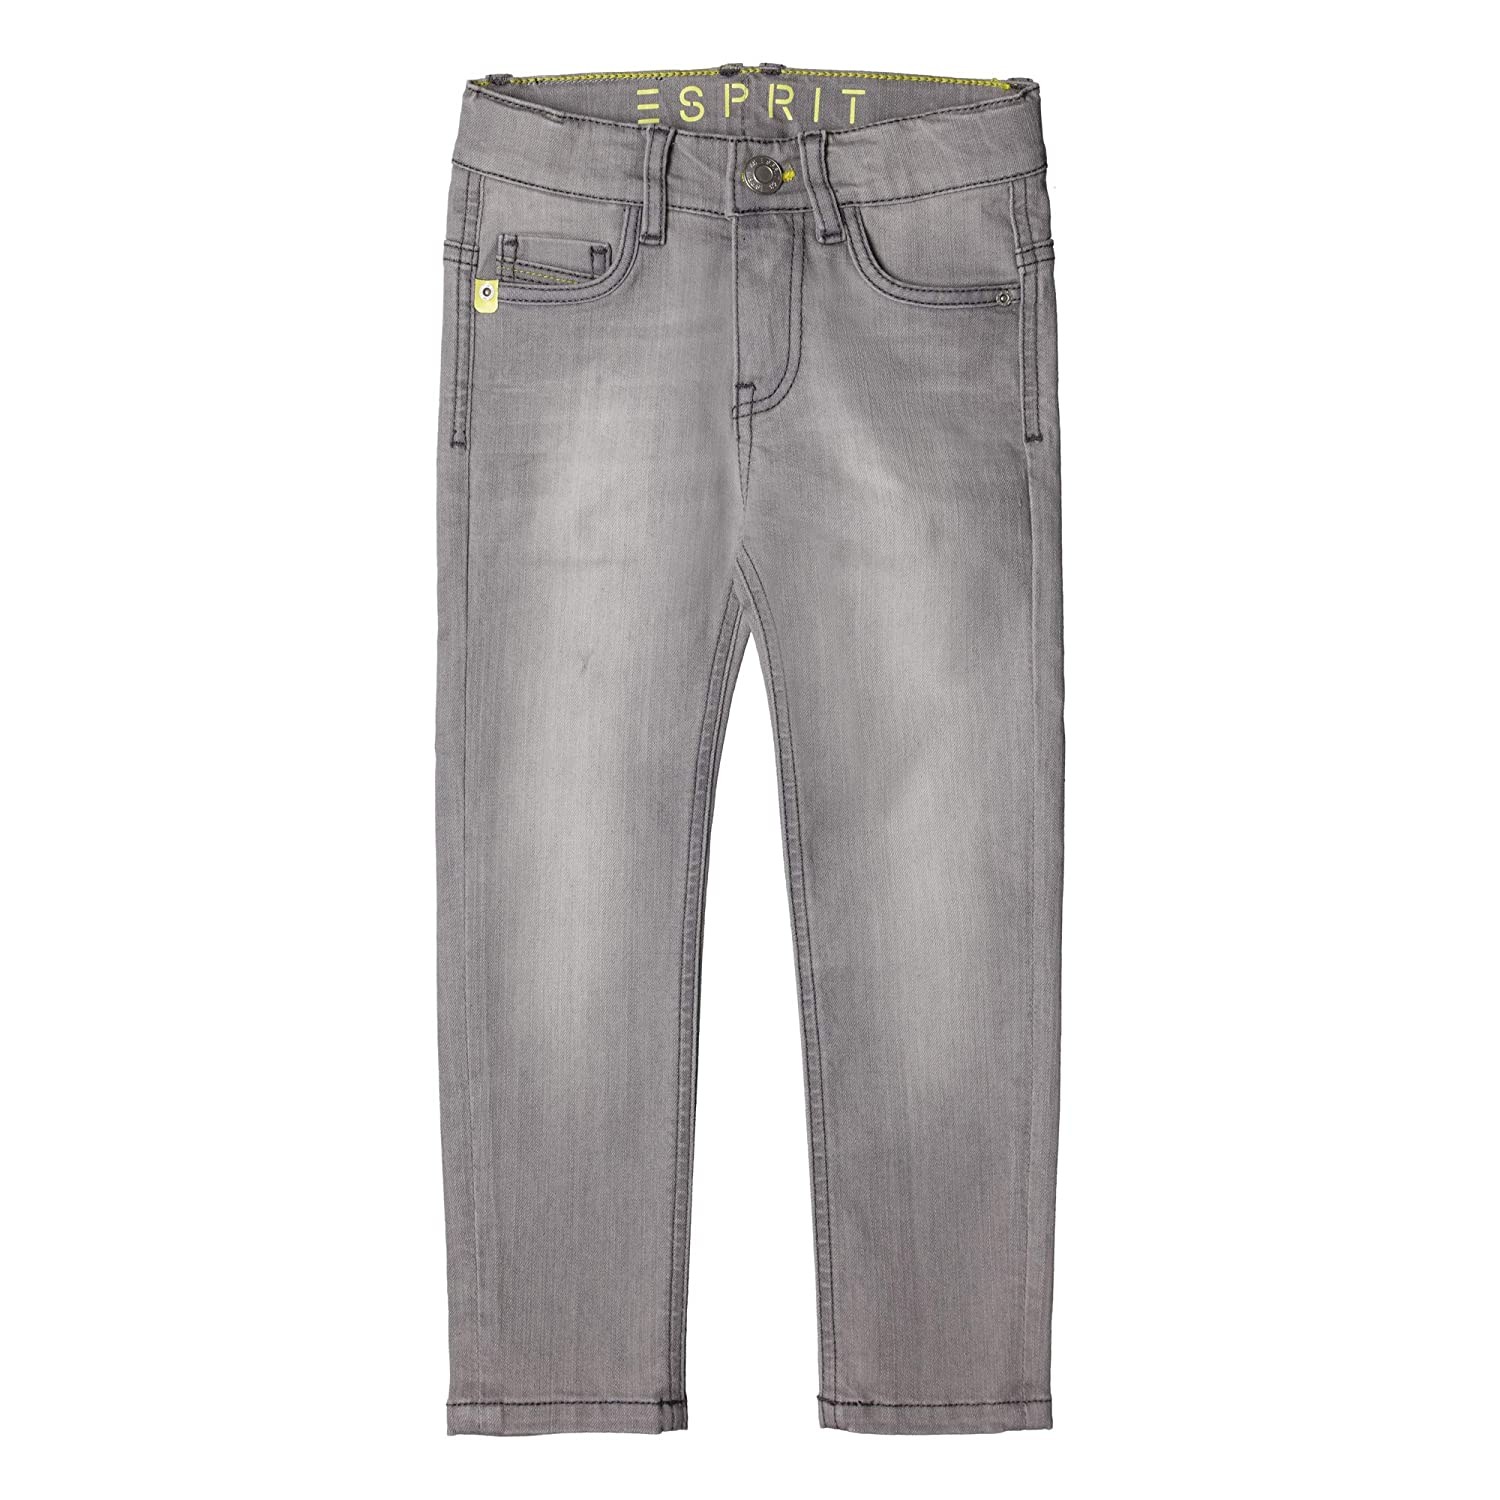 ESPRIT Boys Denim Pants Jeans